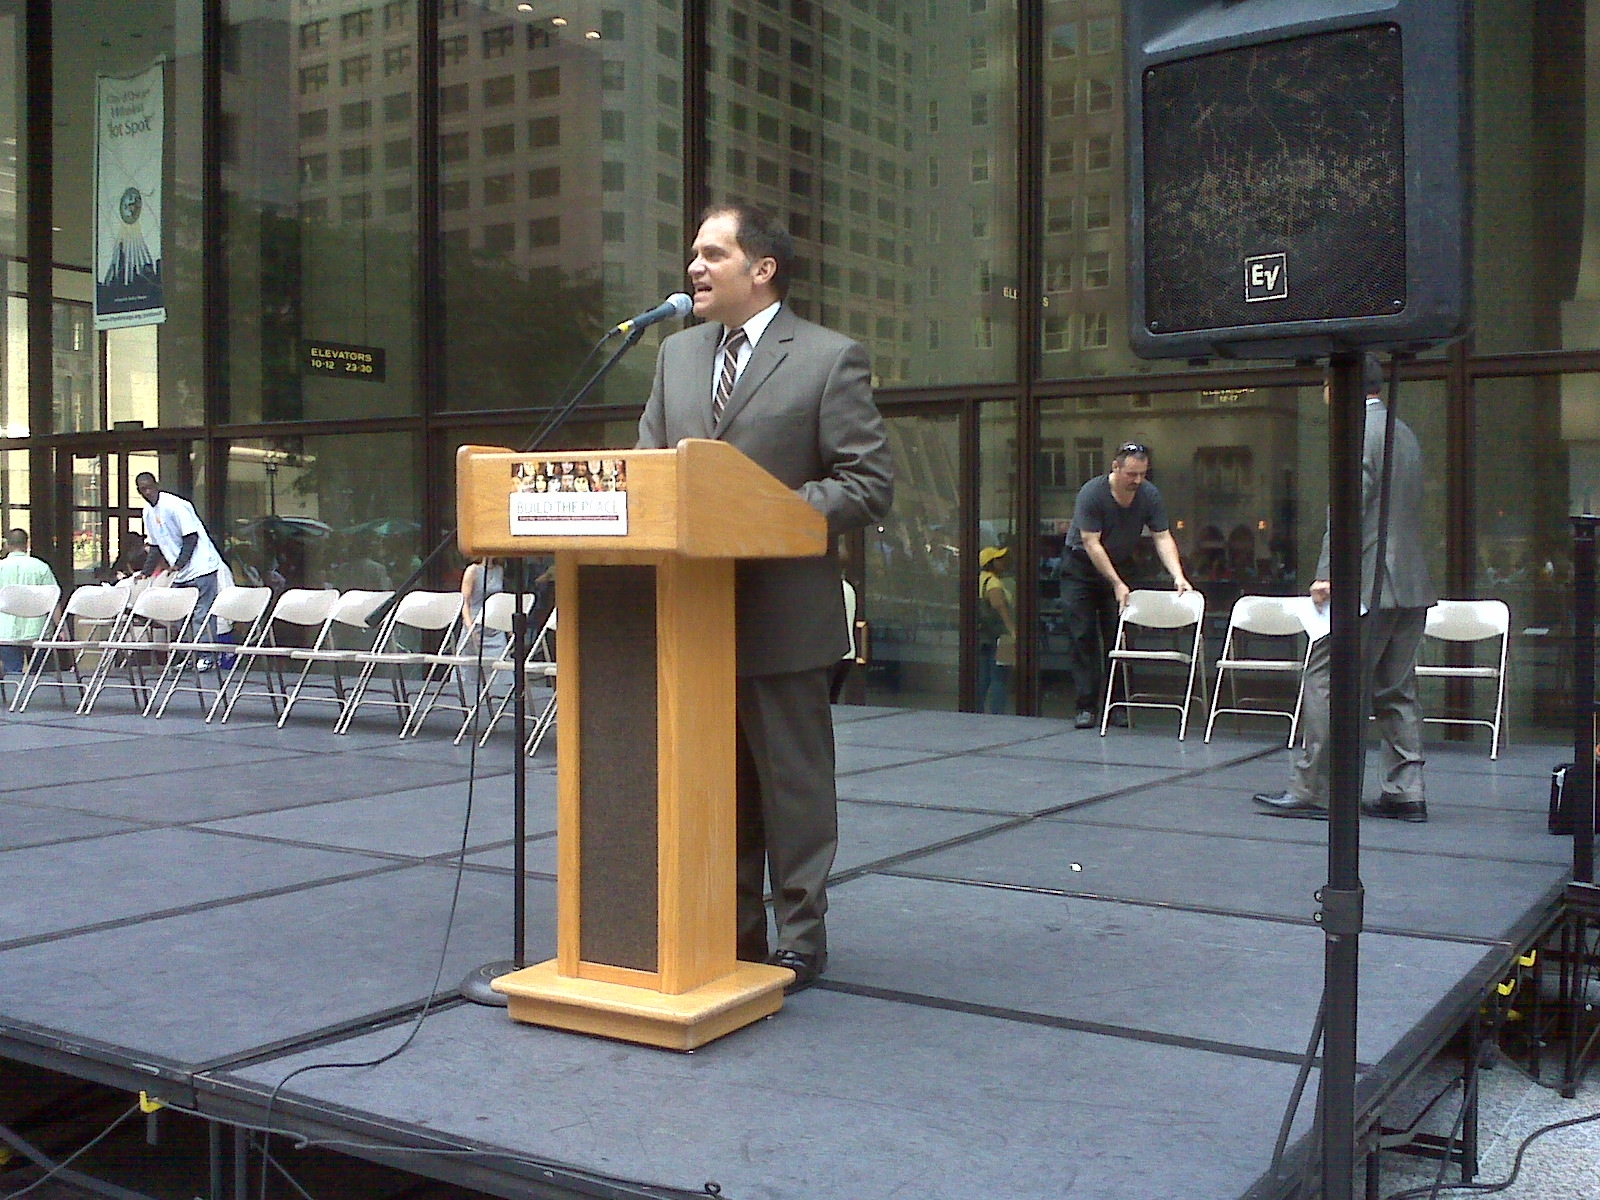 Rocco J. Claps at Daley Plaza Reading Governor's Peace Proclamation